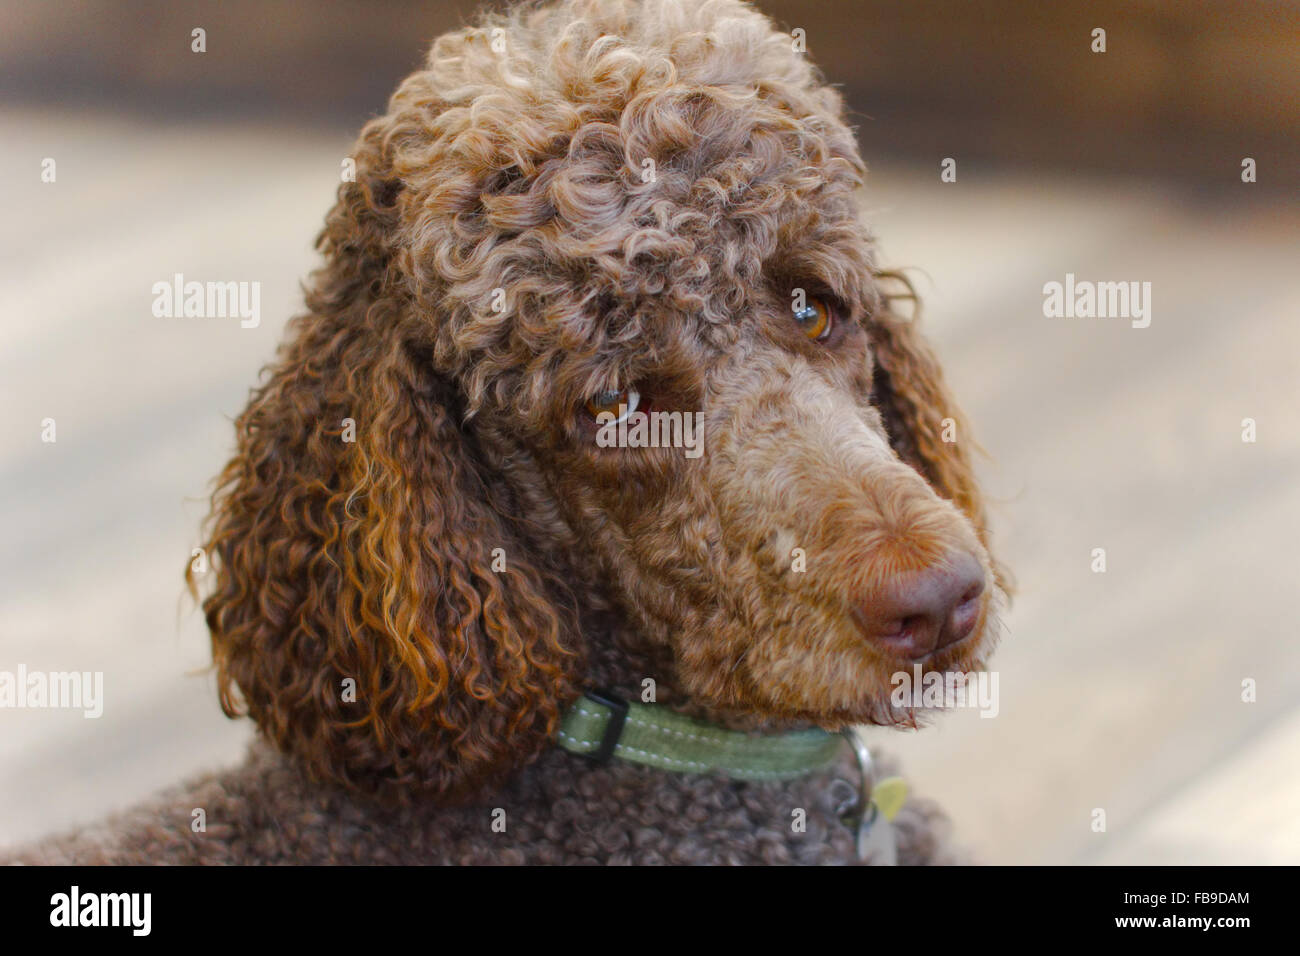 Brown adult standard poodle looking into camera - Stock Image